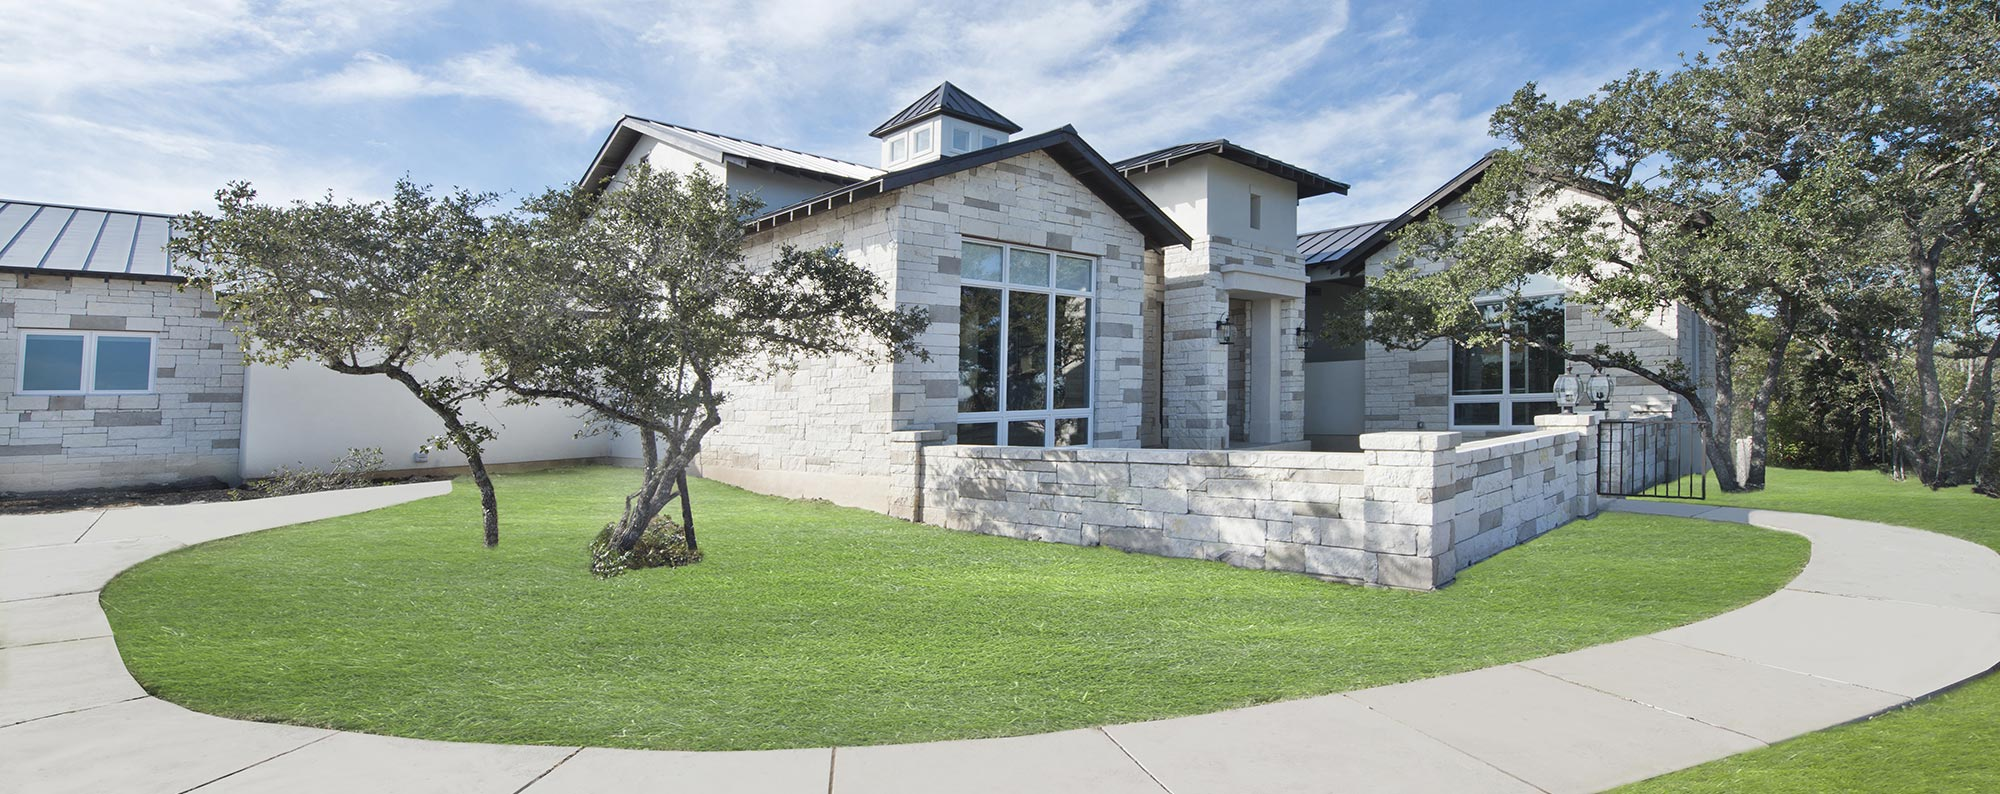 Modern Contemporary Home - Custom Home Builder San Antonio - Robare ...